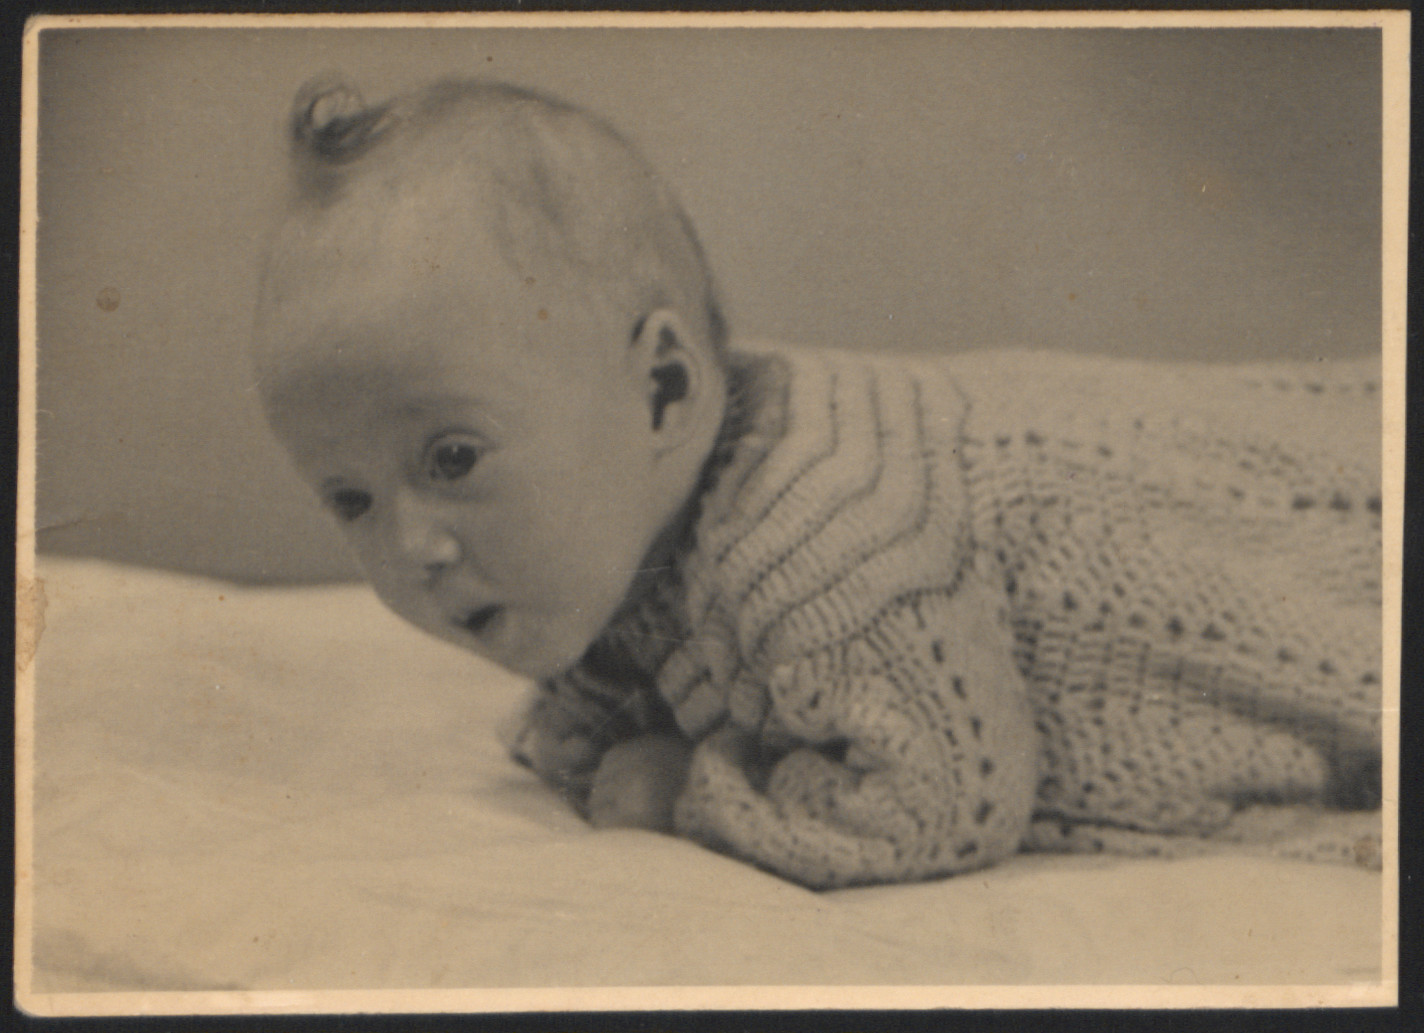 Portrait of Marie Majerowicz, a Jewish infant born in Westerbork who later died in Auschwitz.